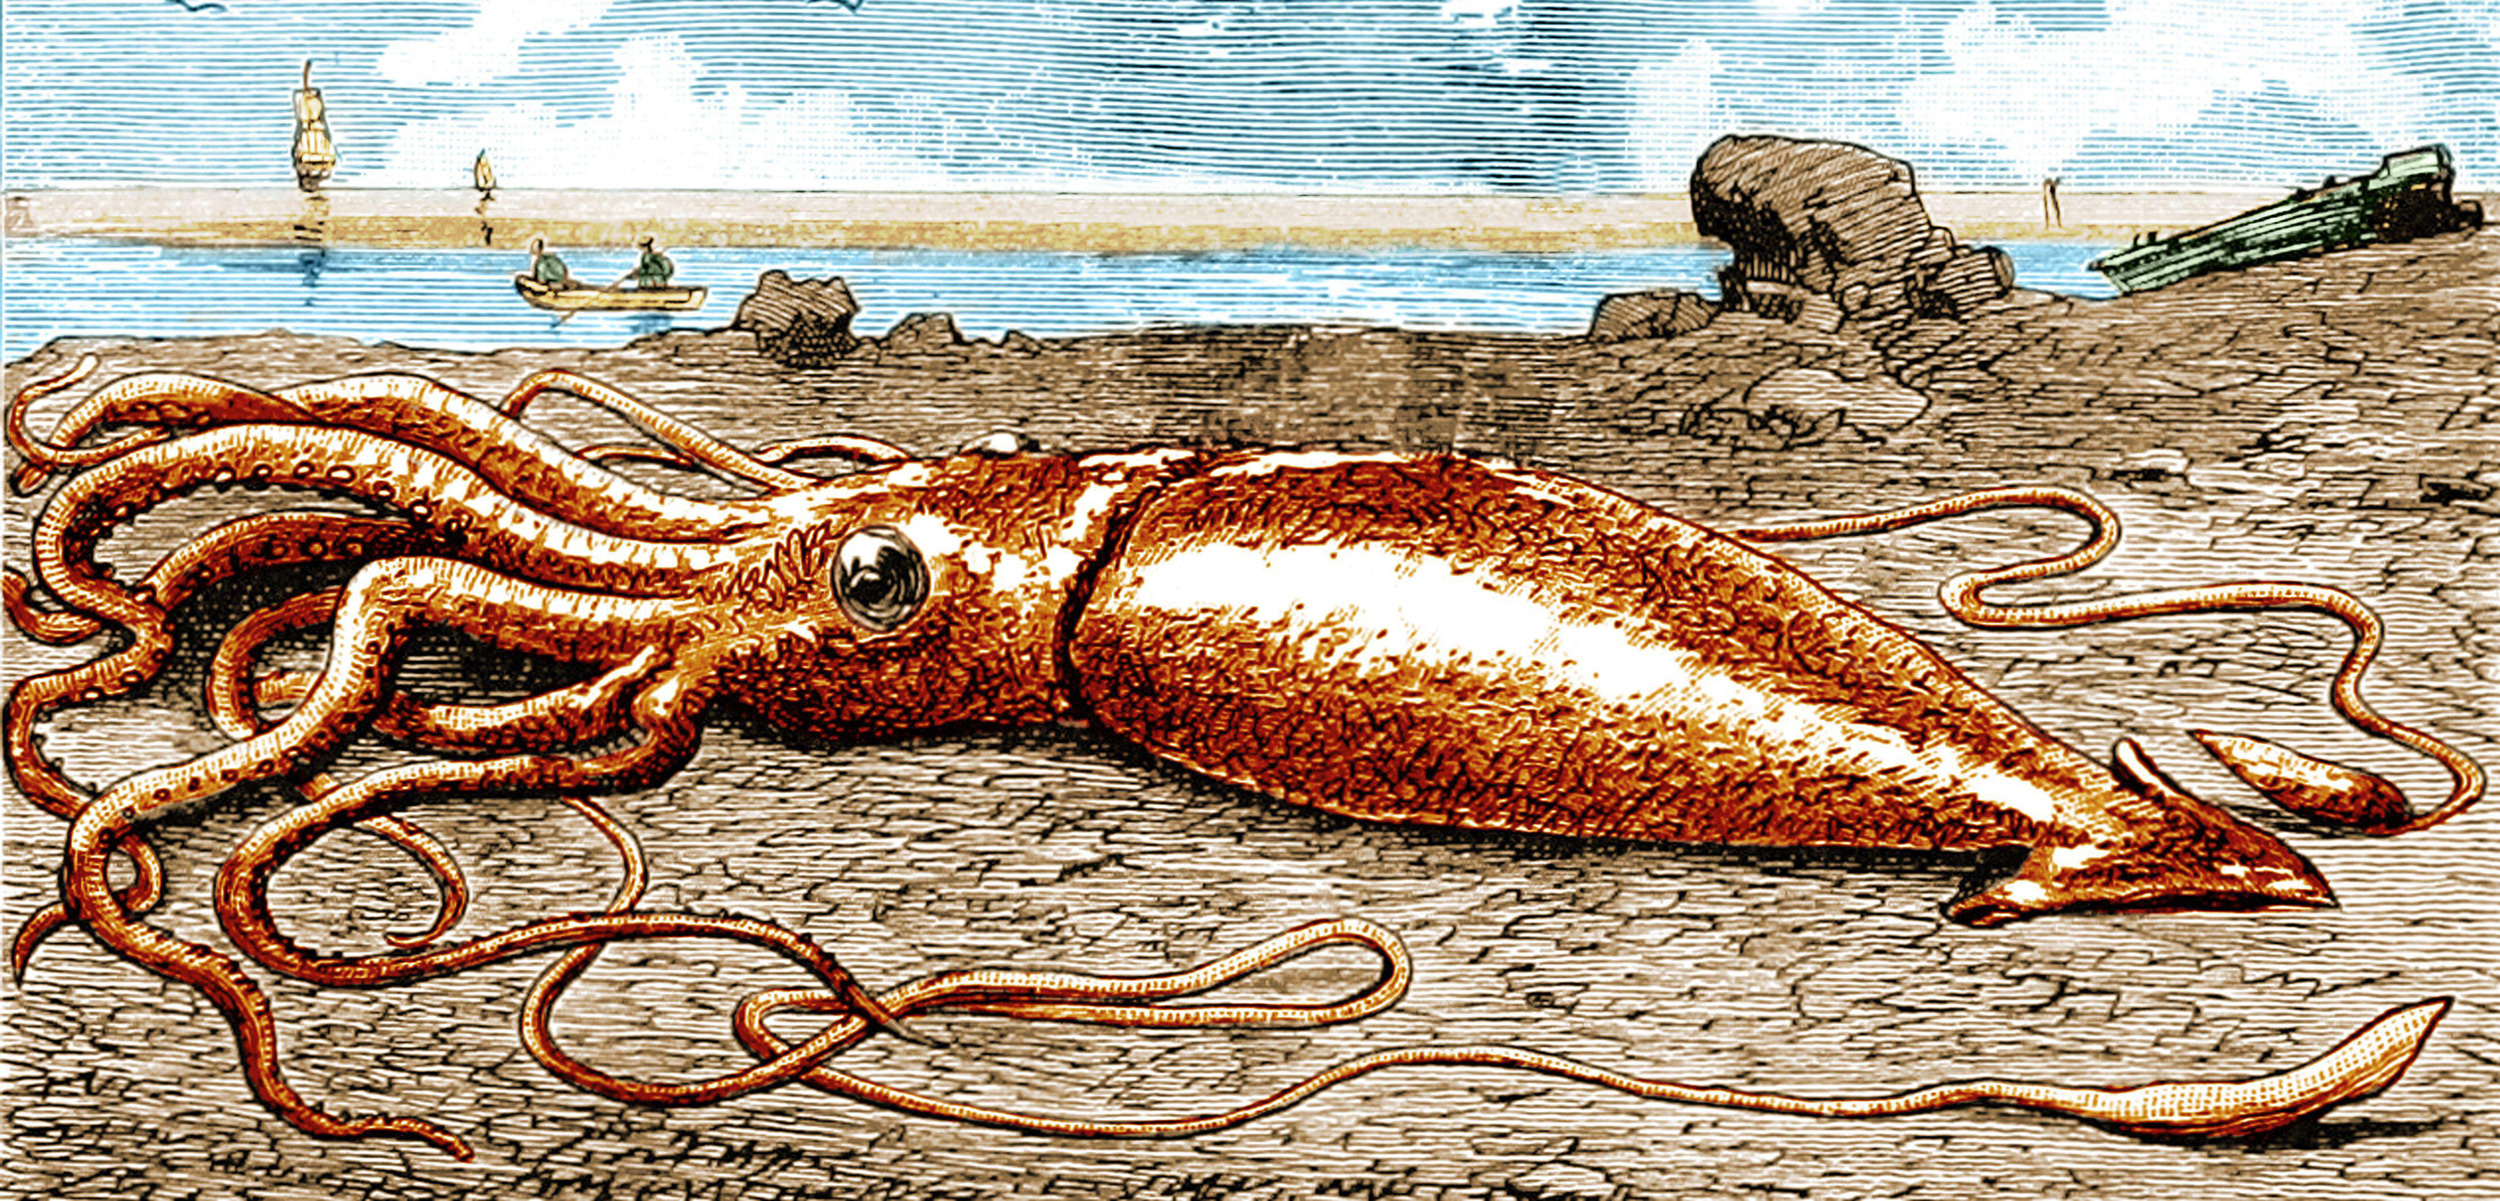 illustration of a giant squid